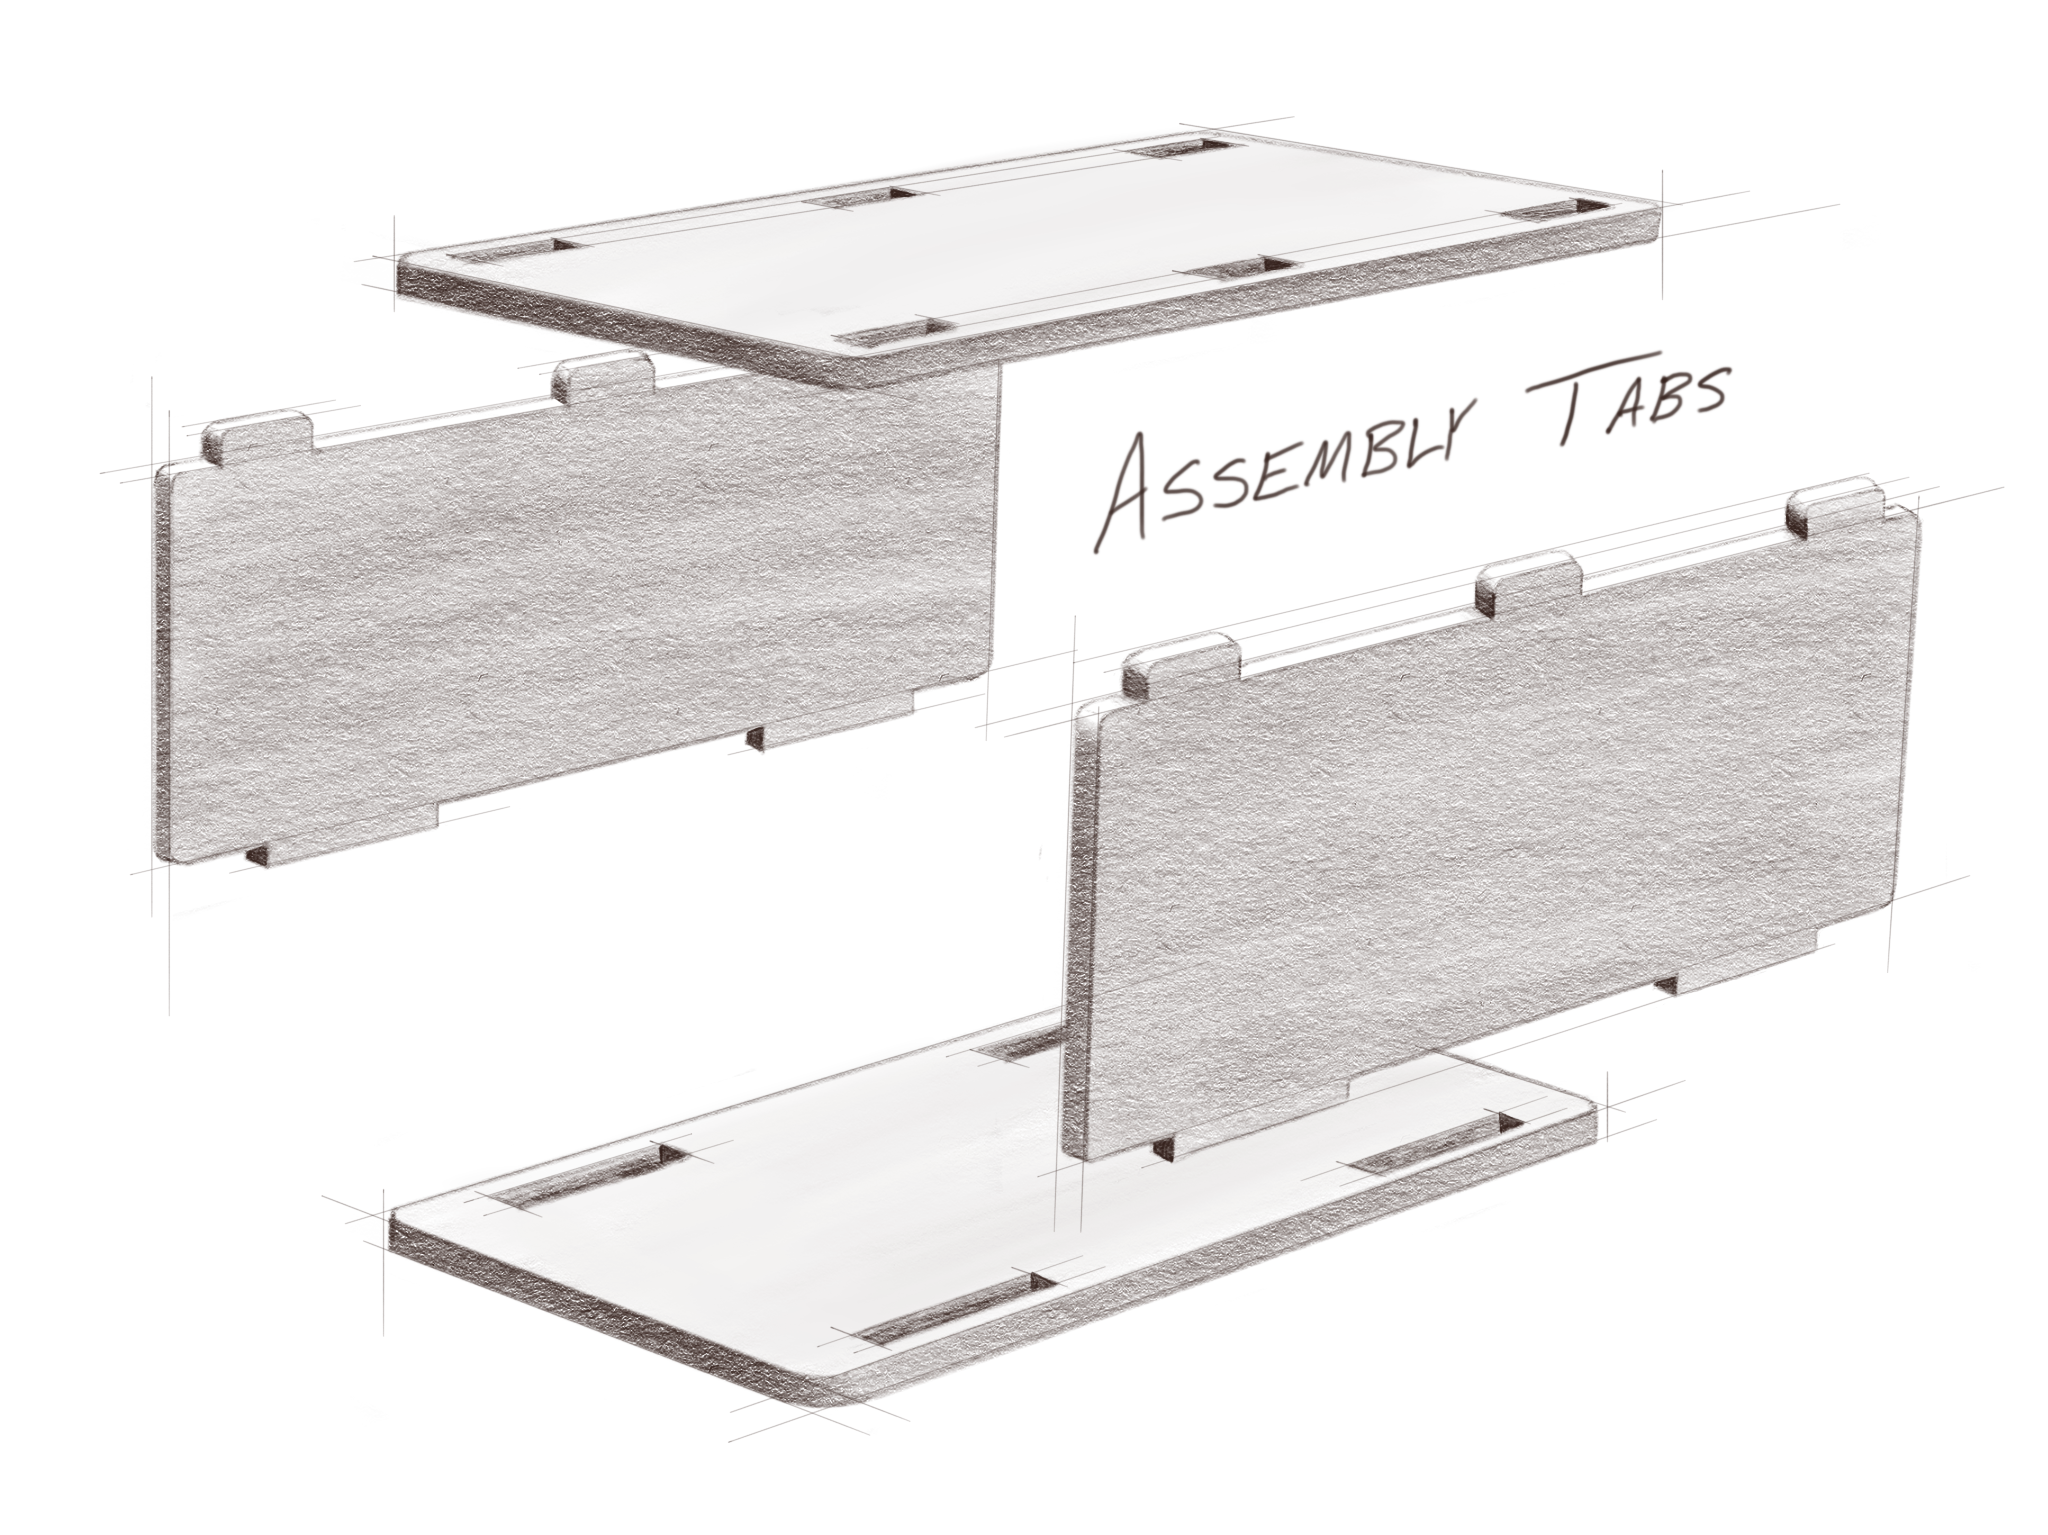 During the sheet metal process, assembly tabs can be designed into the part so that the components self-locate.